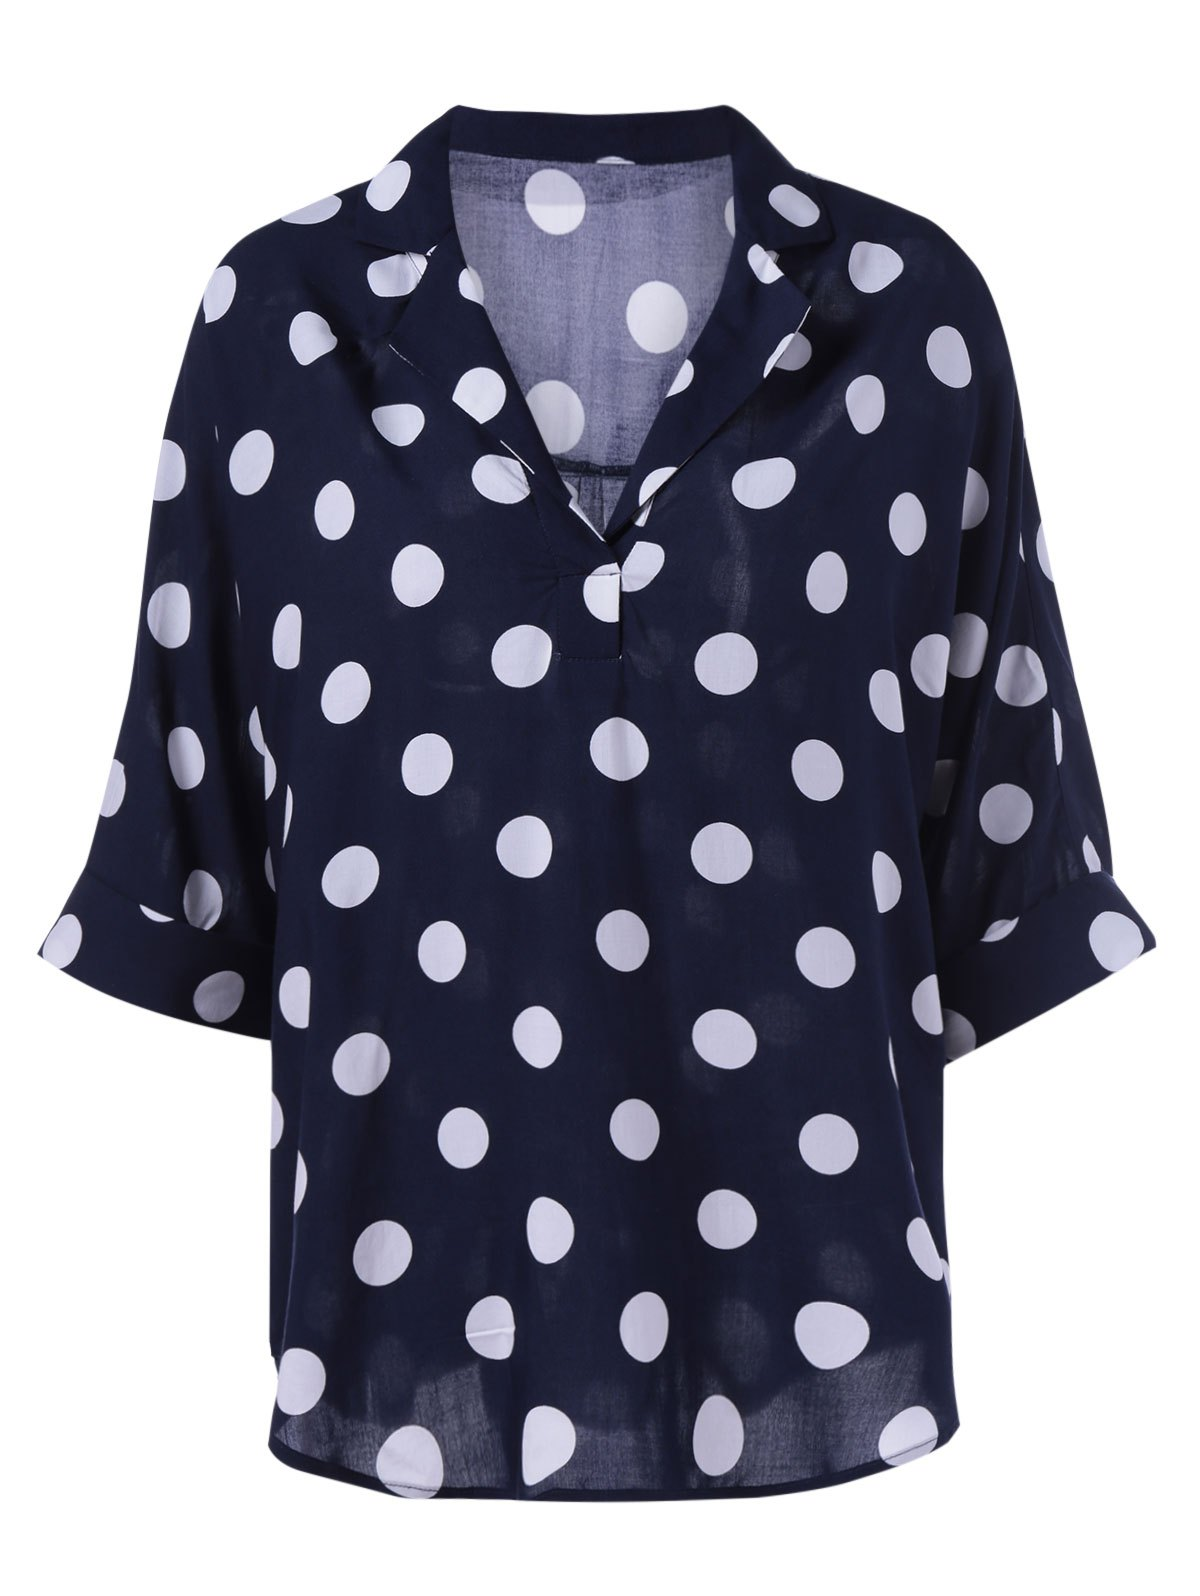 Oversized Lapel Polka Dot Print Women's Blouse